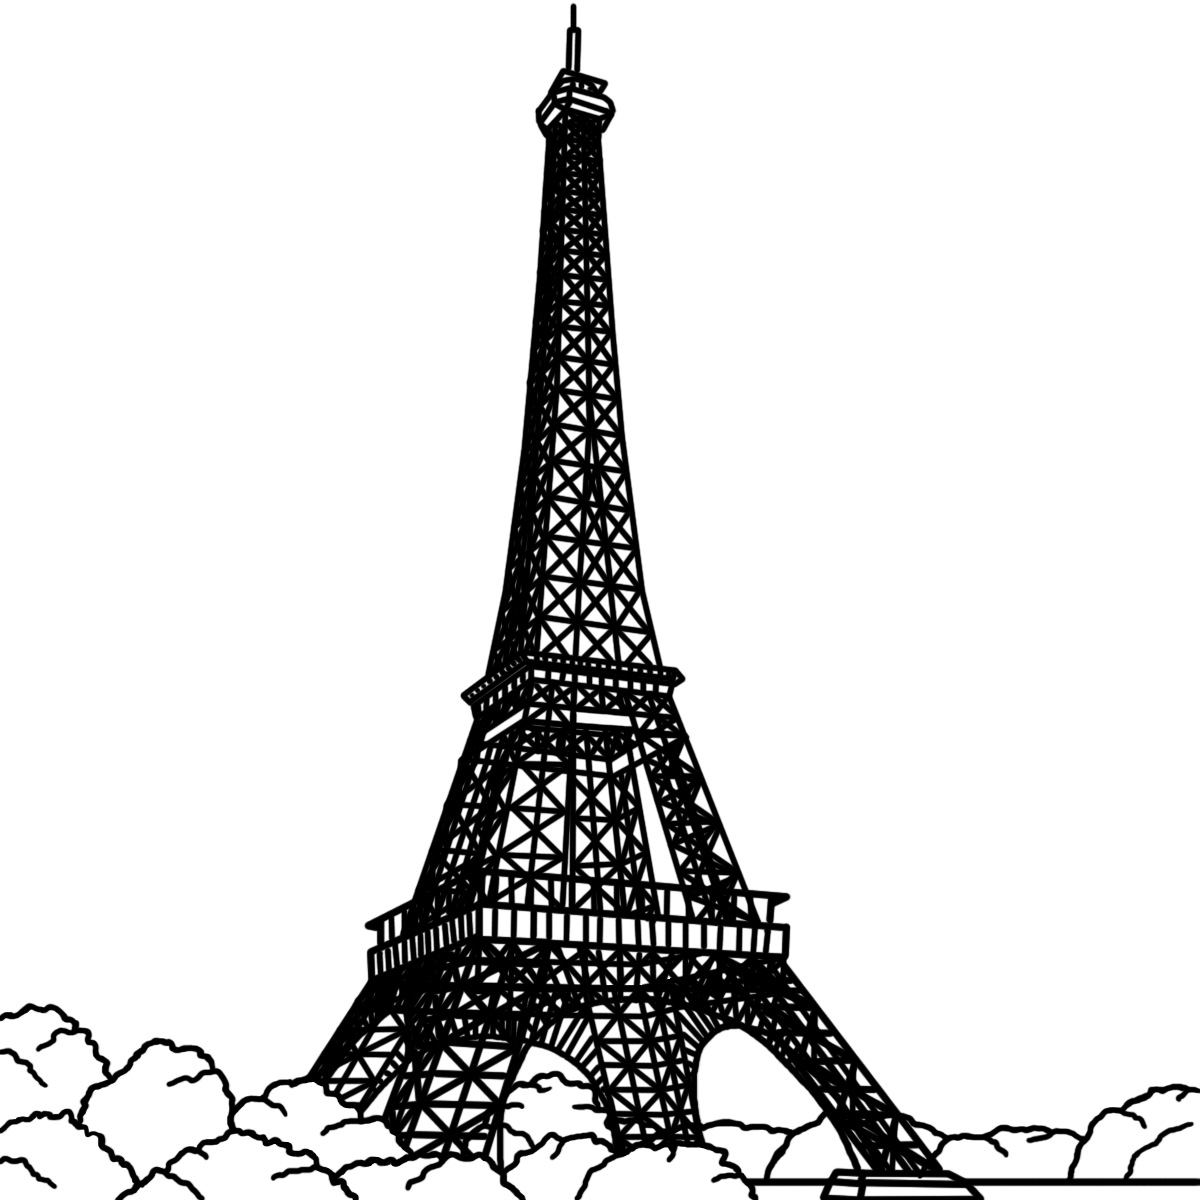 coloring pages eifell tower | Free Printable Eiffel Tower Coloring Pages For Kids